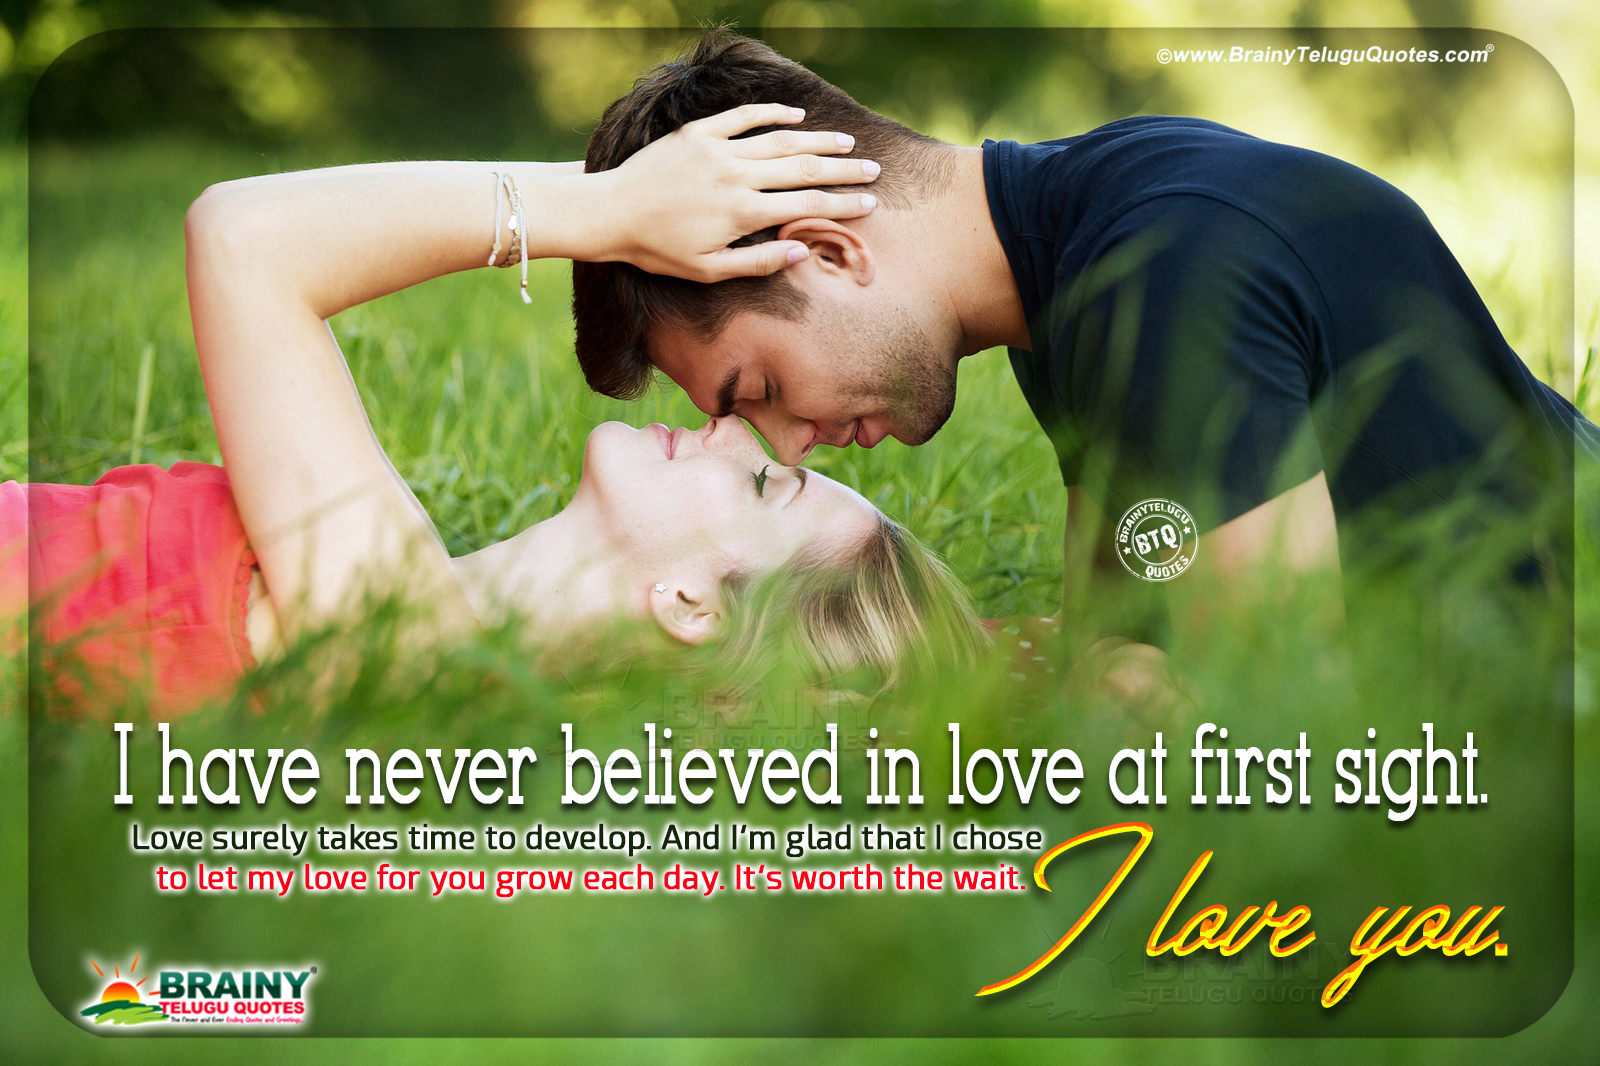 Romantic Love Quotes In English Couple Hd Wallpapers With Romantic Love Poetry In English Brainysms